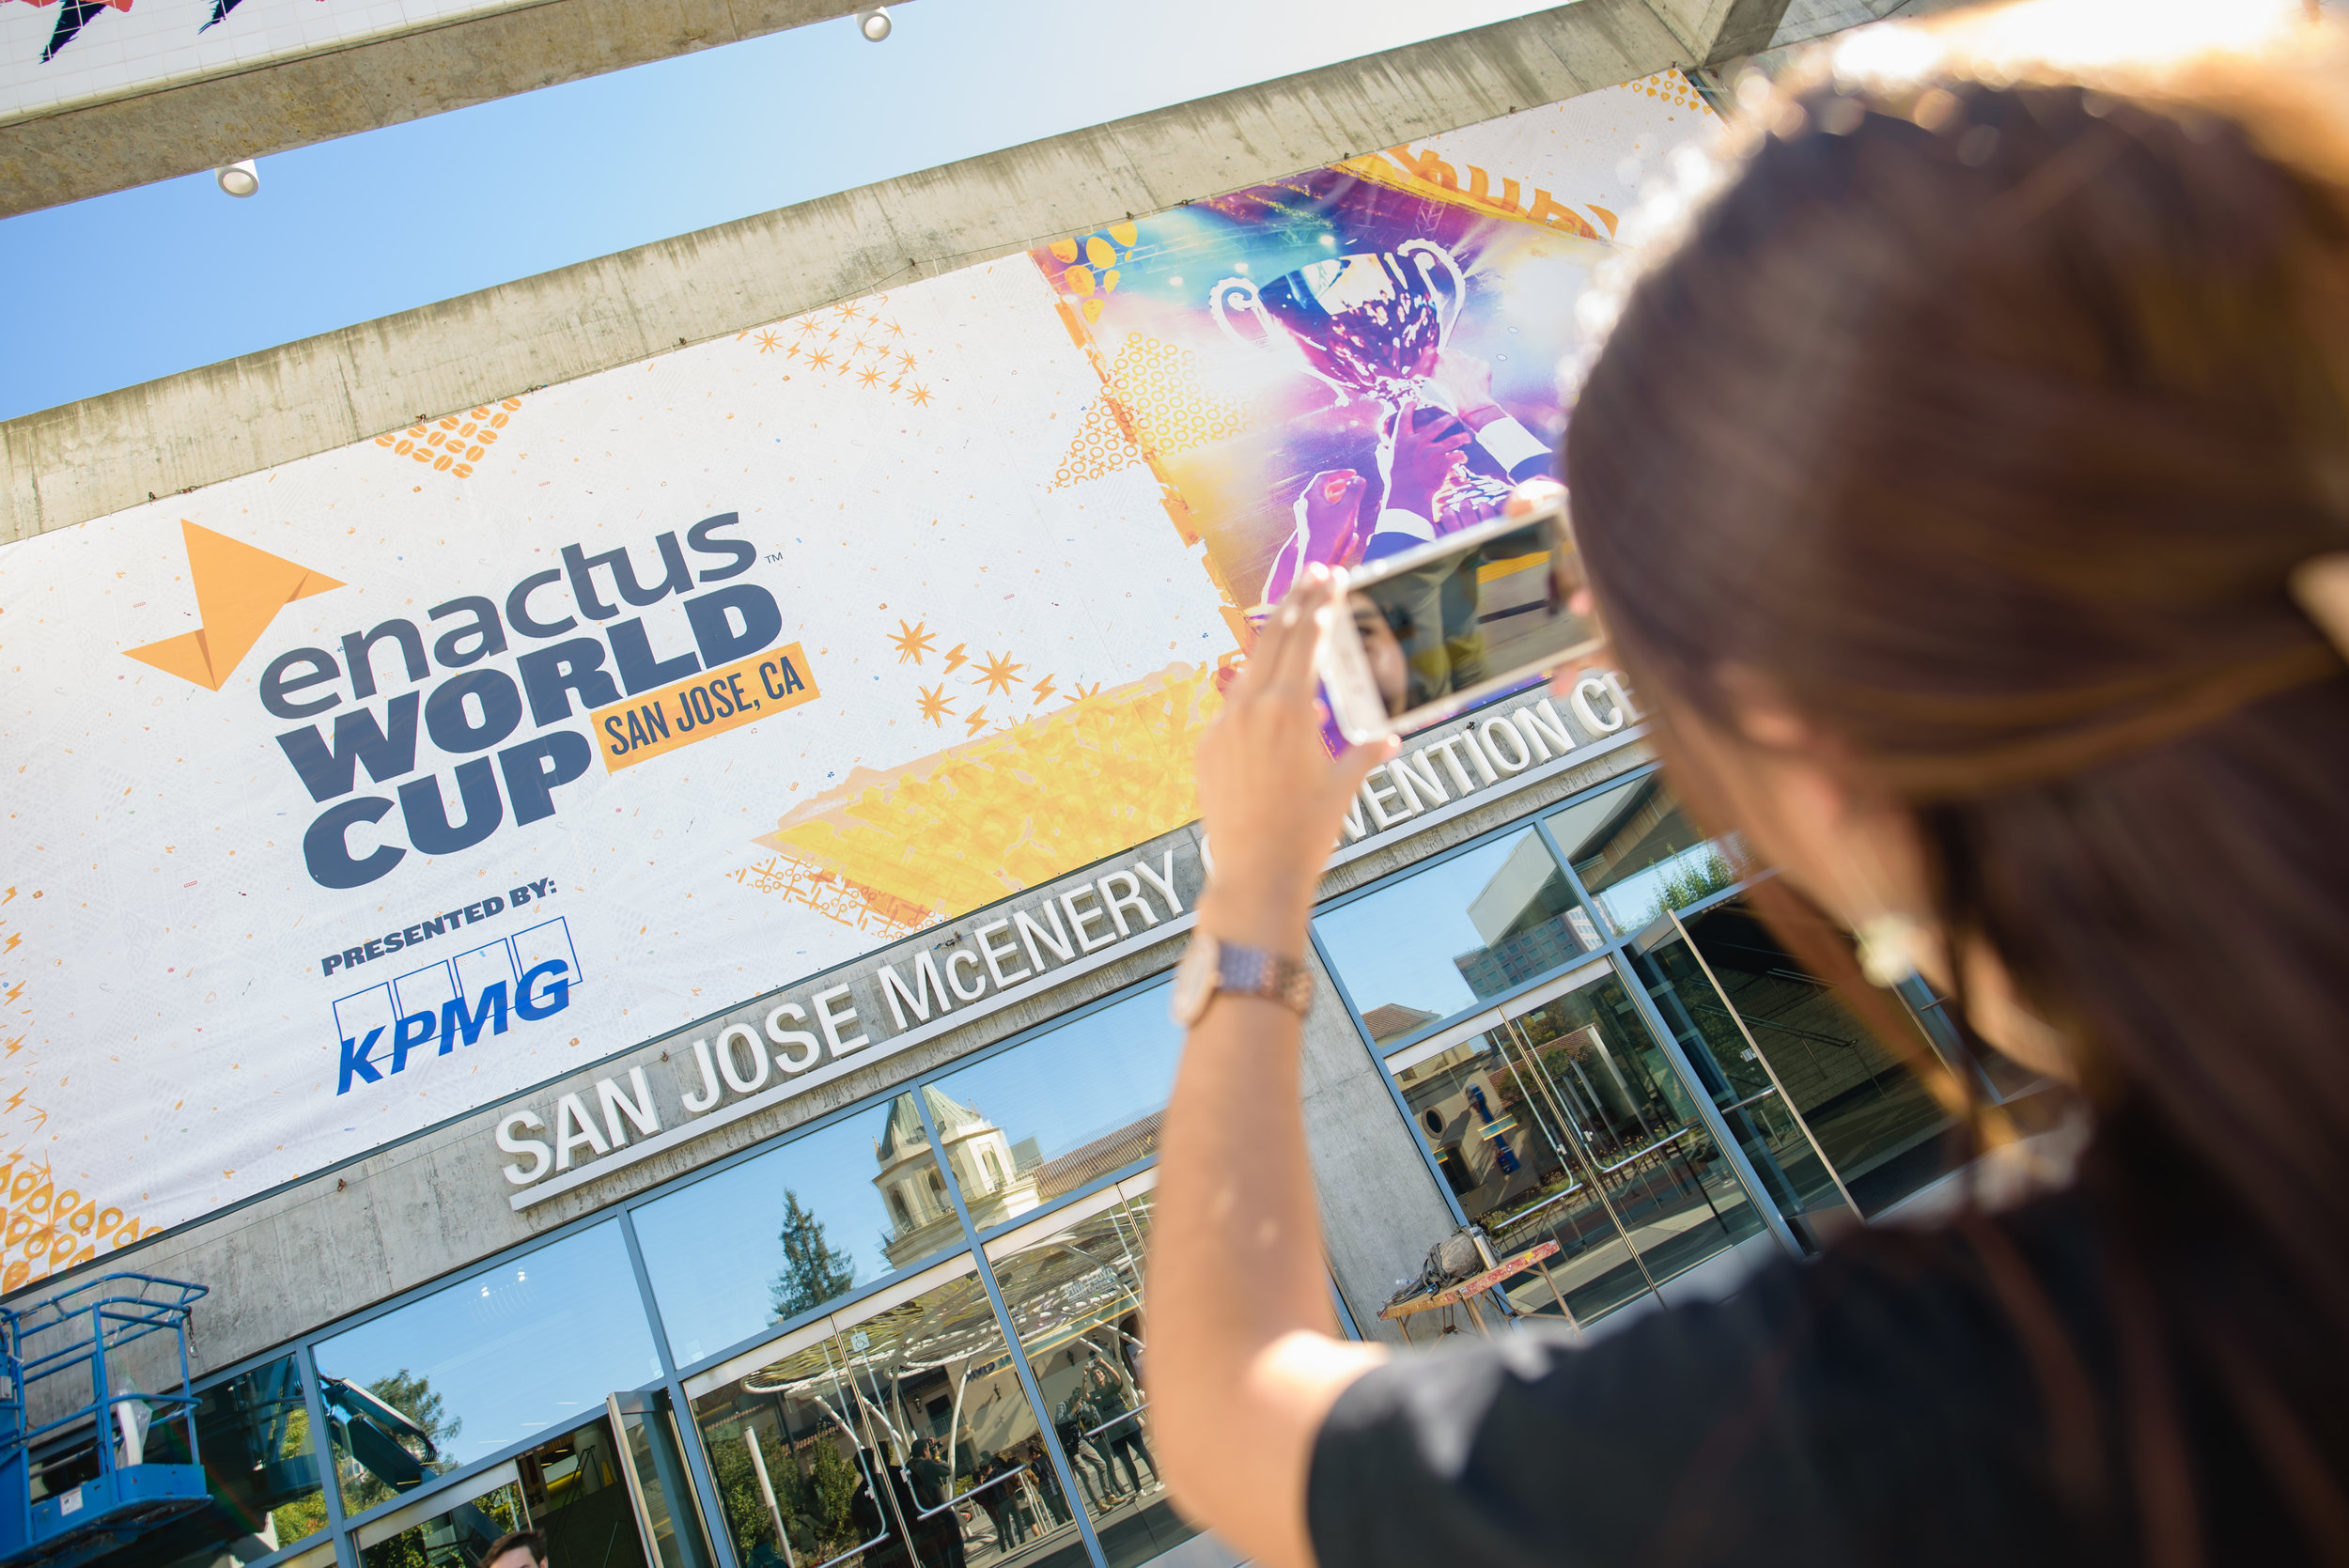 Enactus_WC2018_Preday_0080.jpg